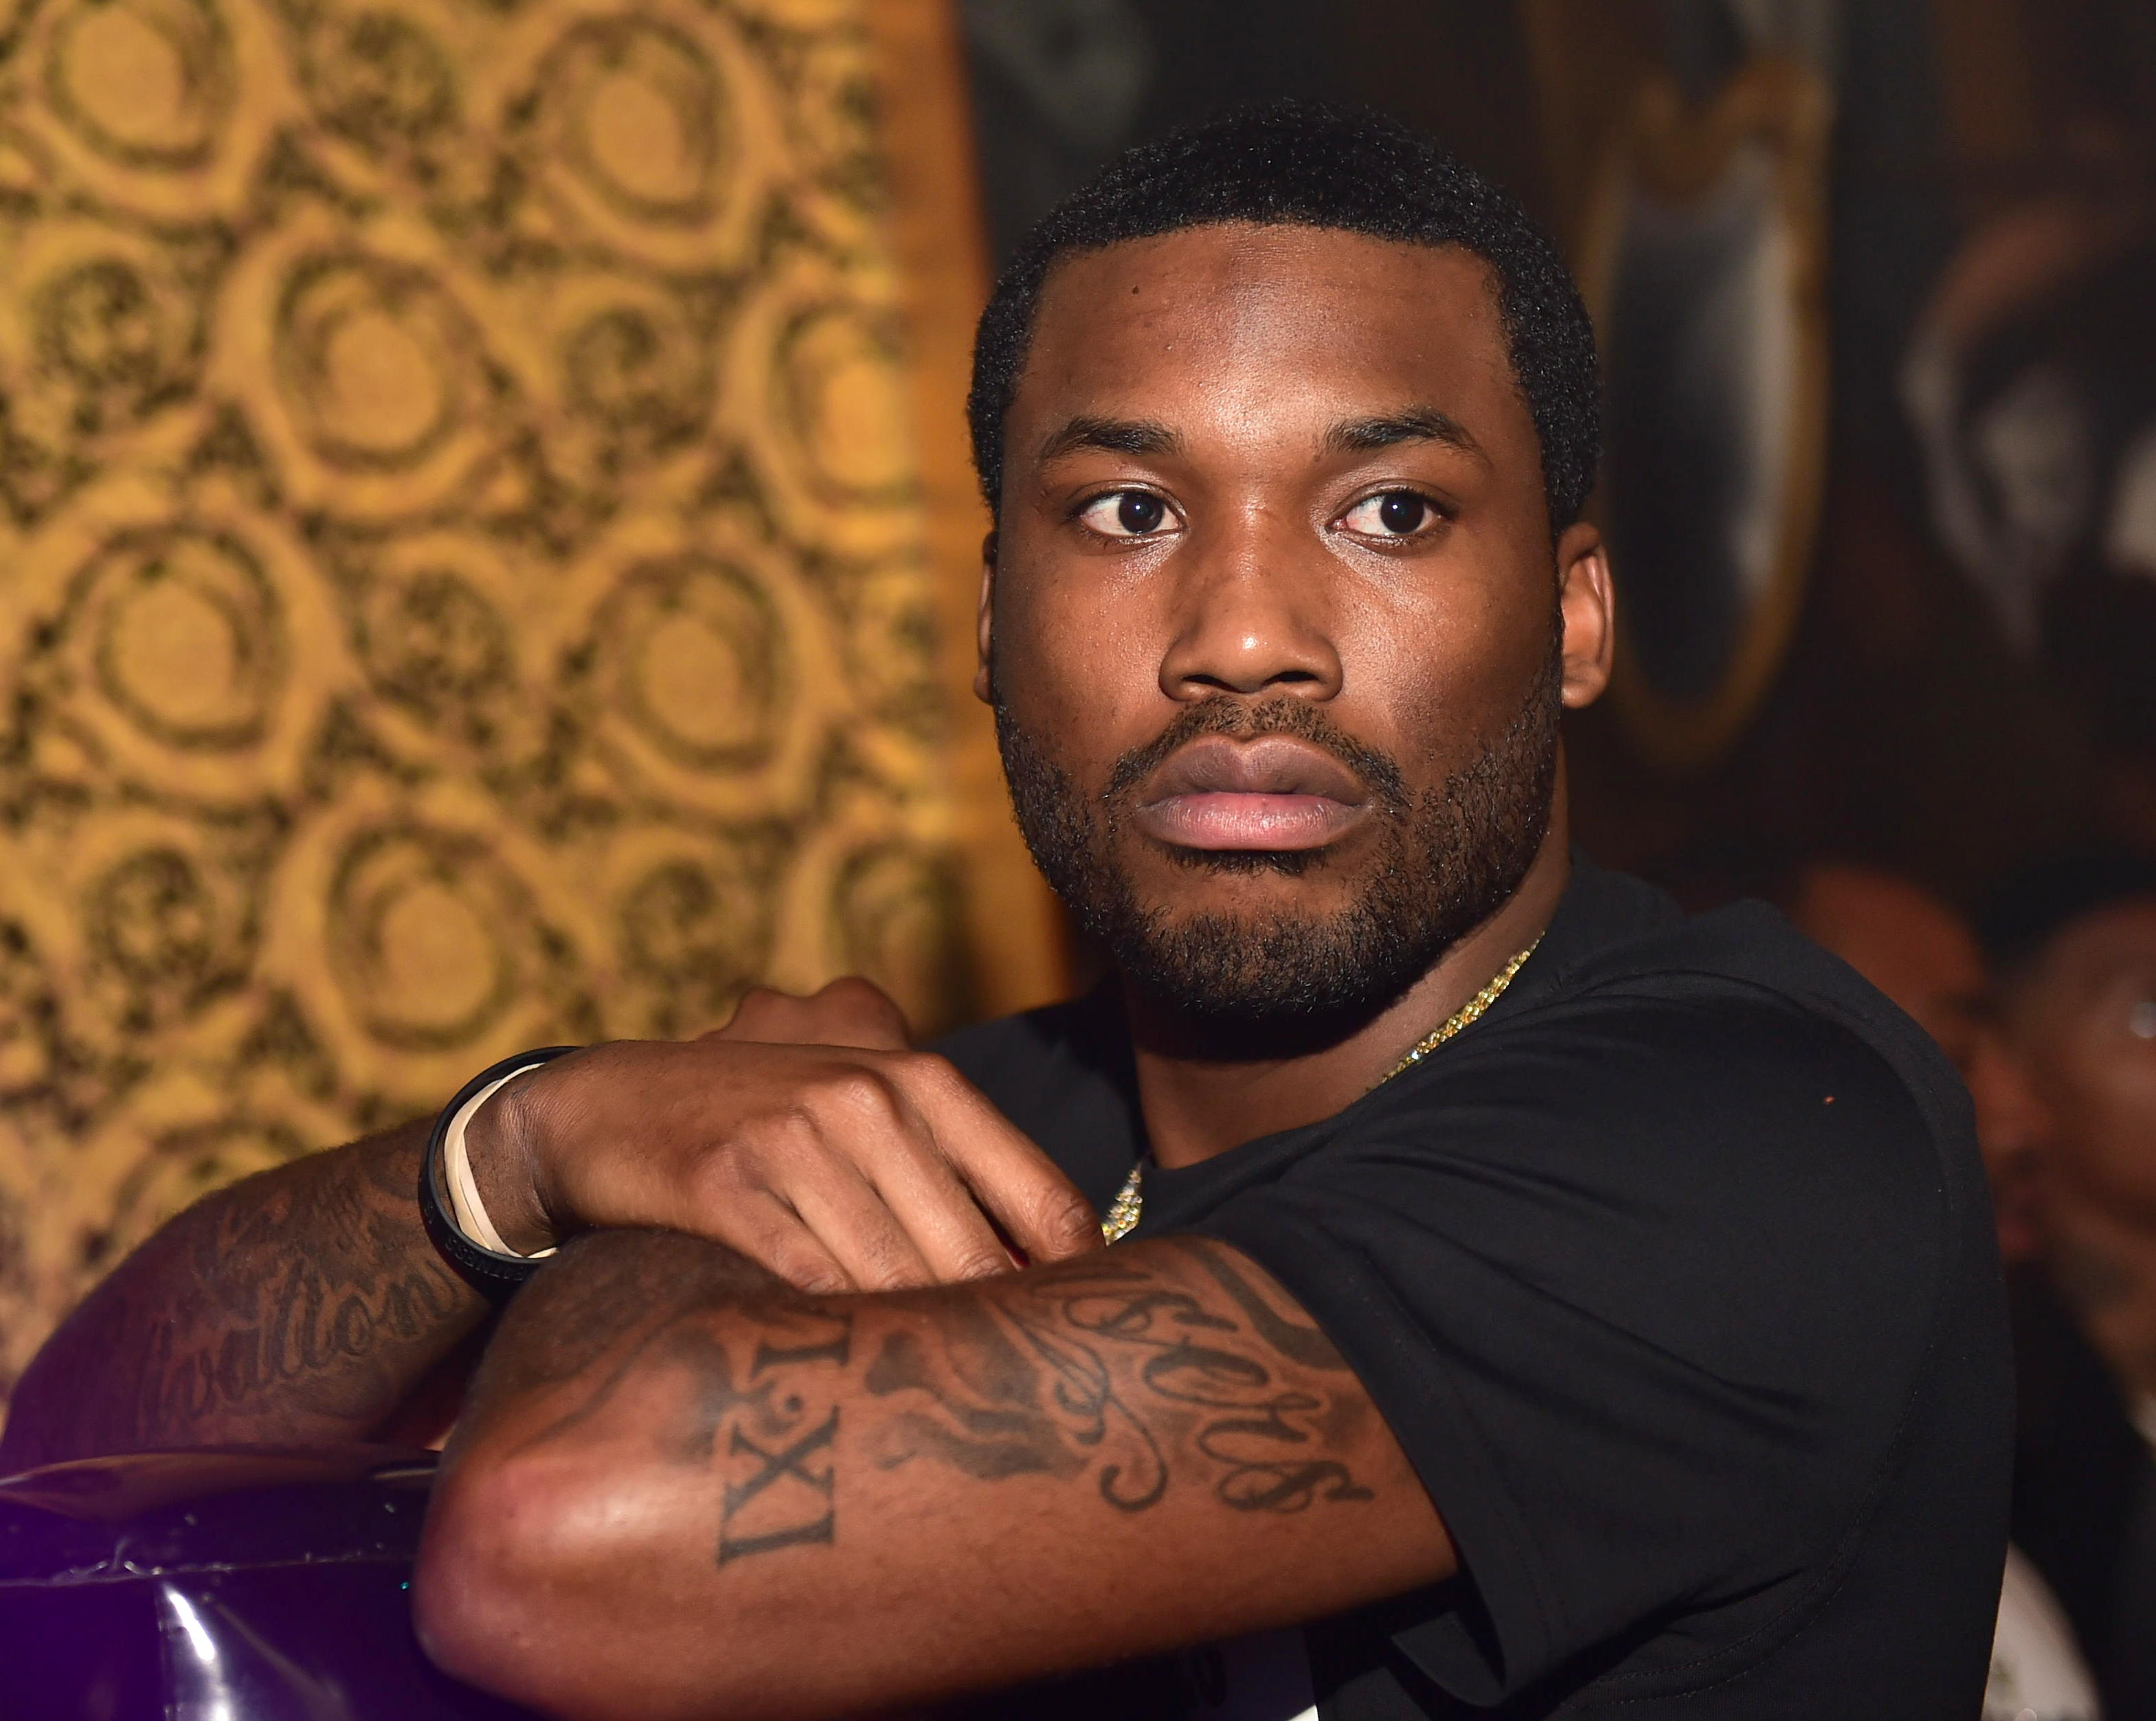 Medusa's 1 Year Anniversary Celebration Hosted By Meek Mill